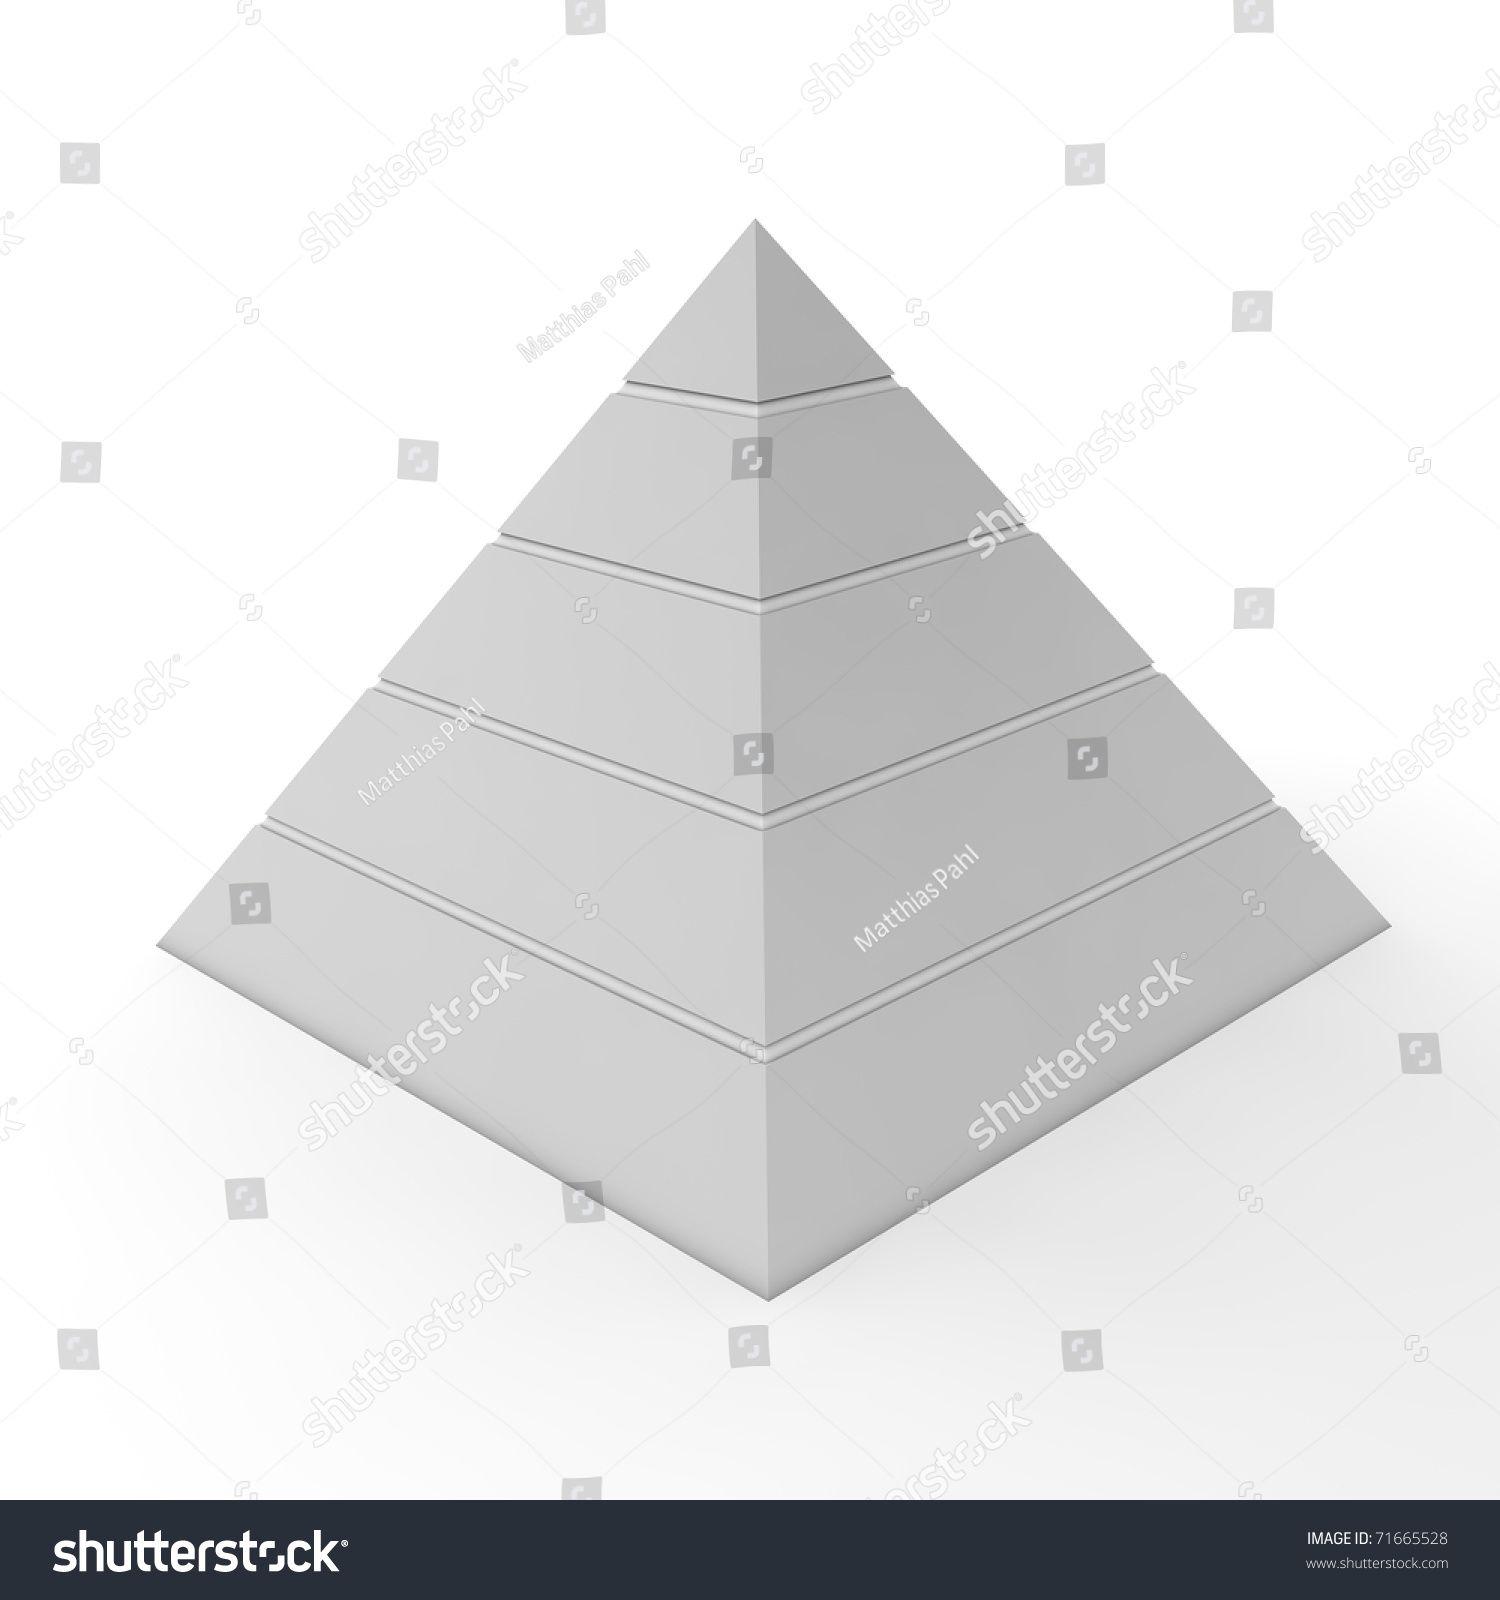 Ten Thousand Dollar Pyramid Template Image collections - Template ...